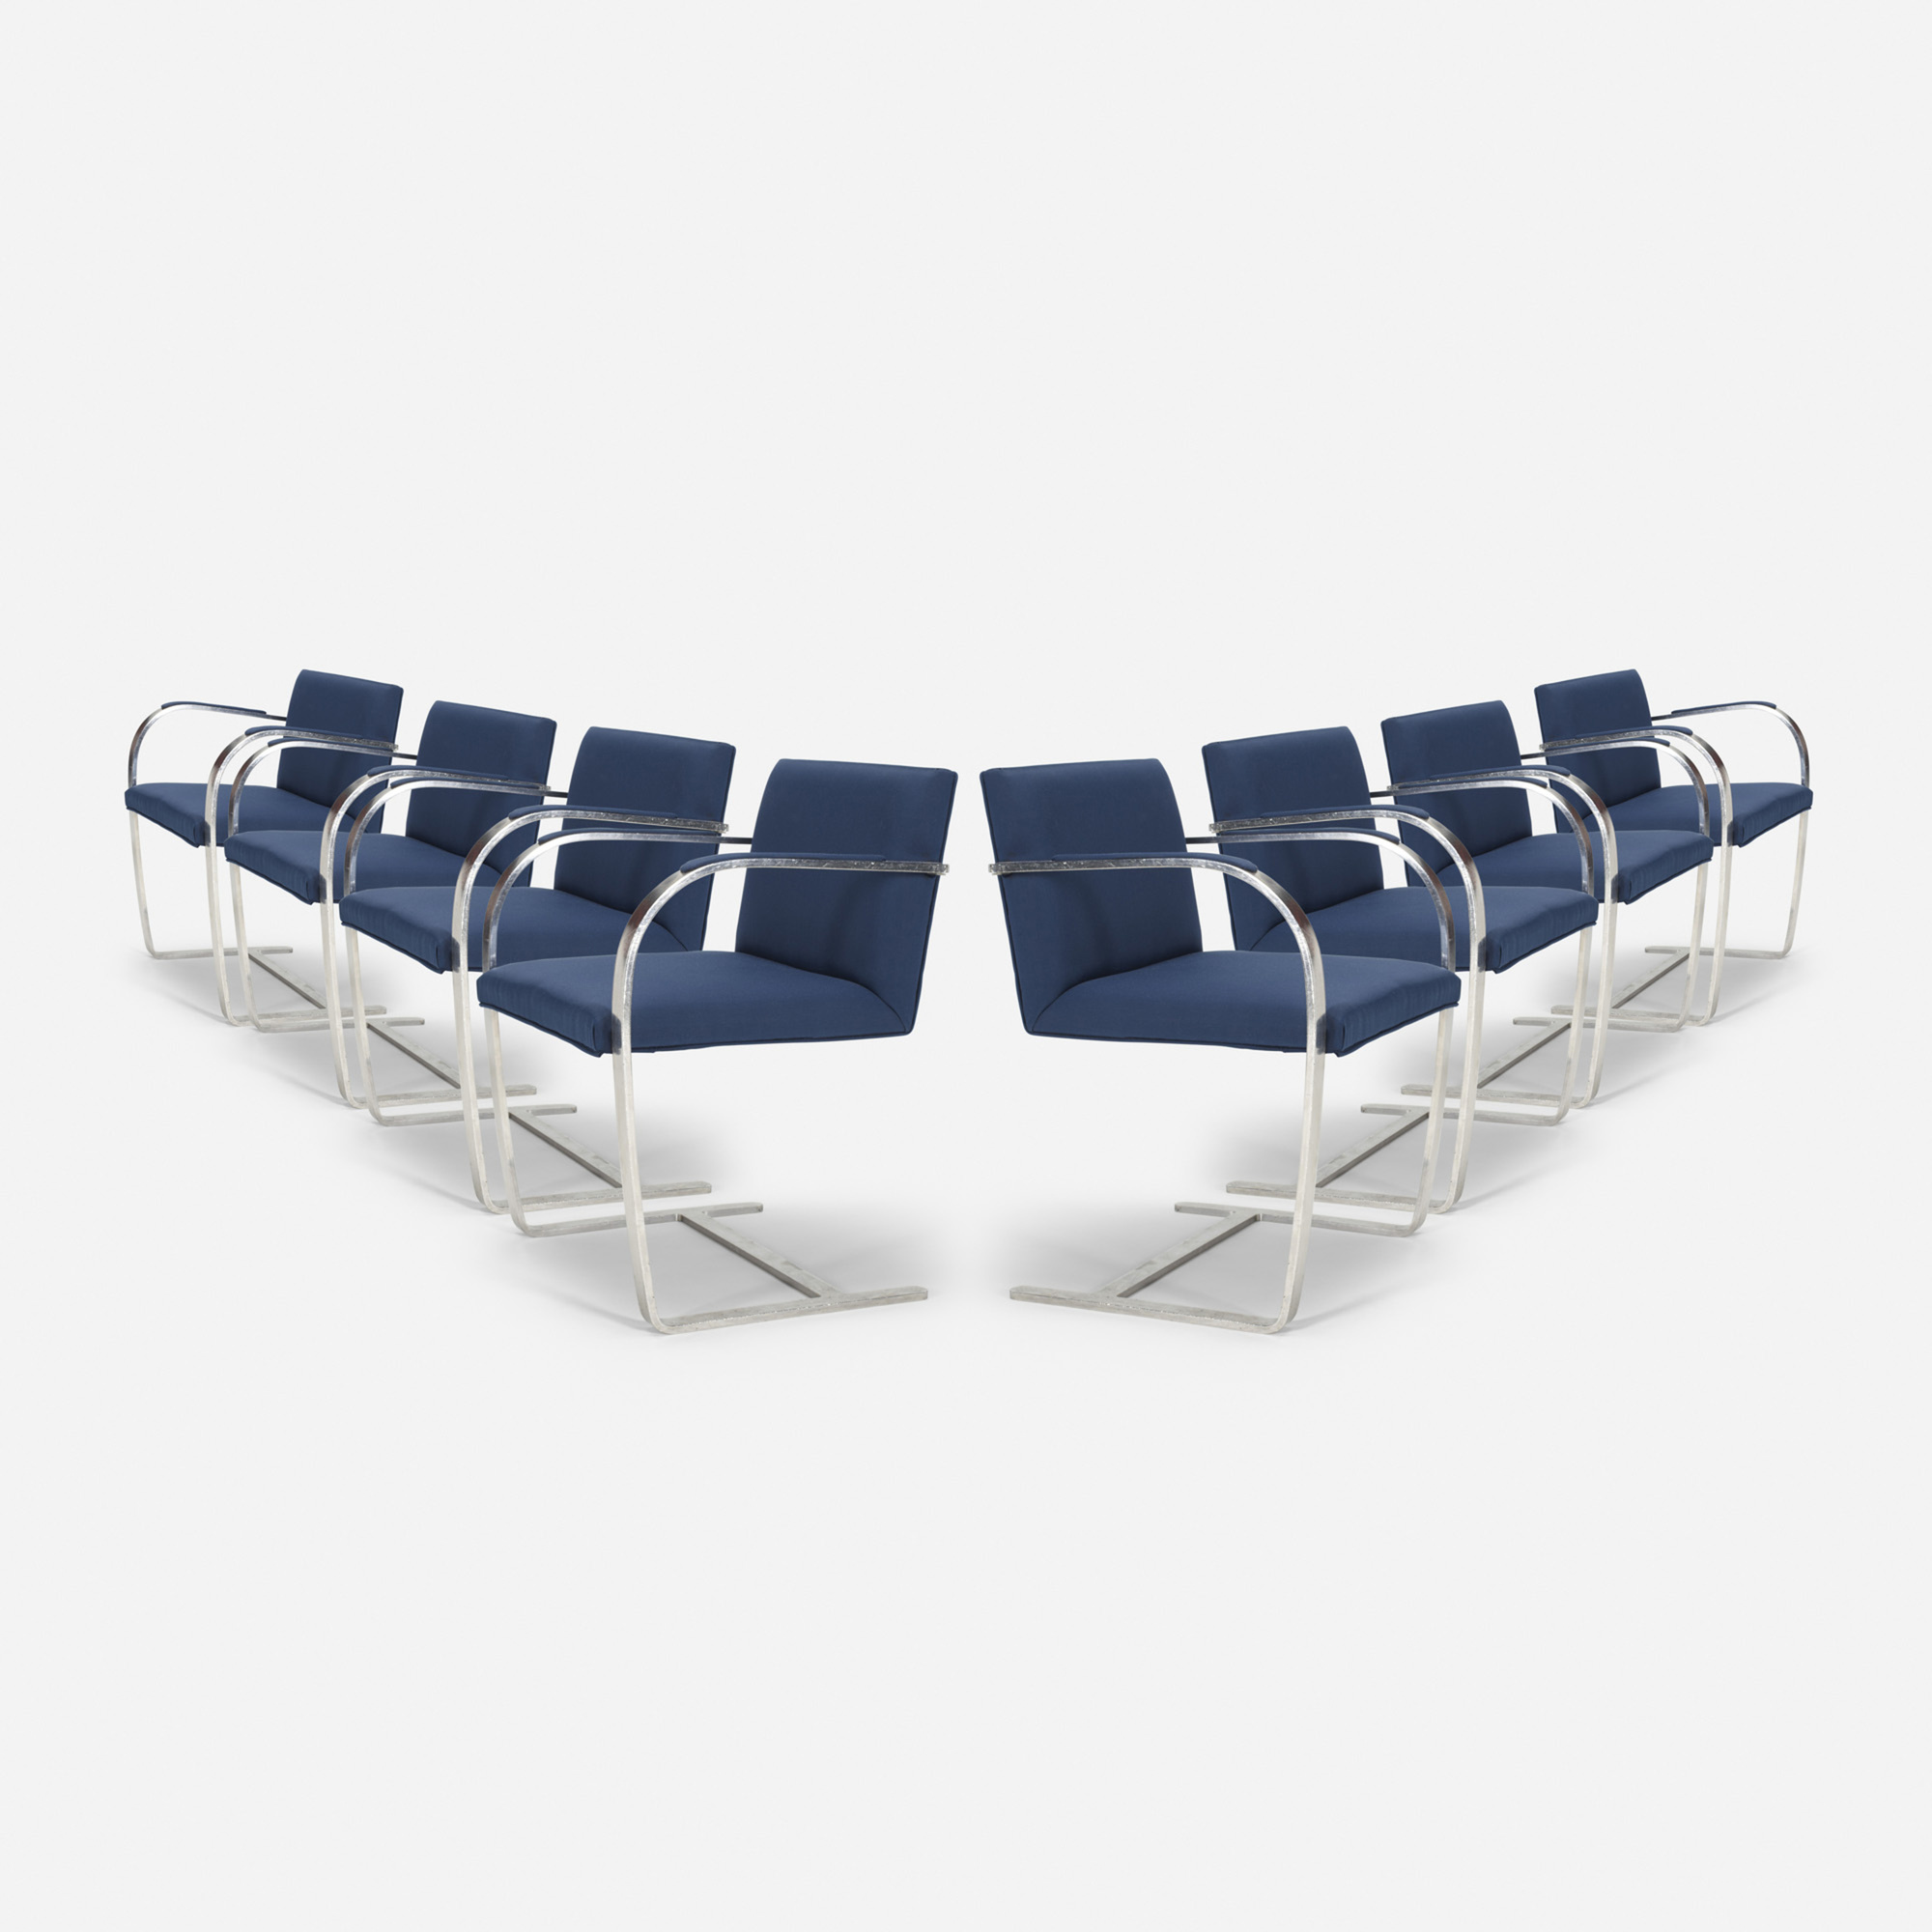 504: Ludwig Mies van der Rohe / Brno chairs from The Four Seasons, set of eight (1 of 1)